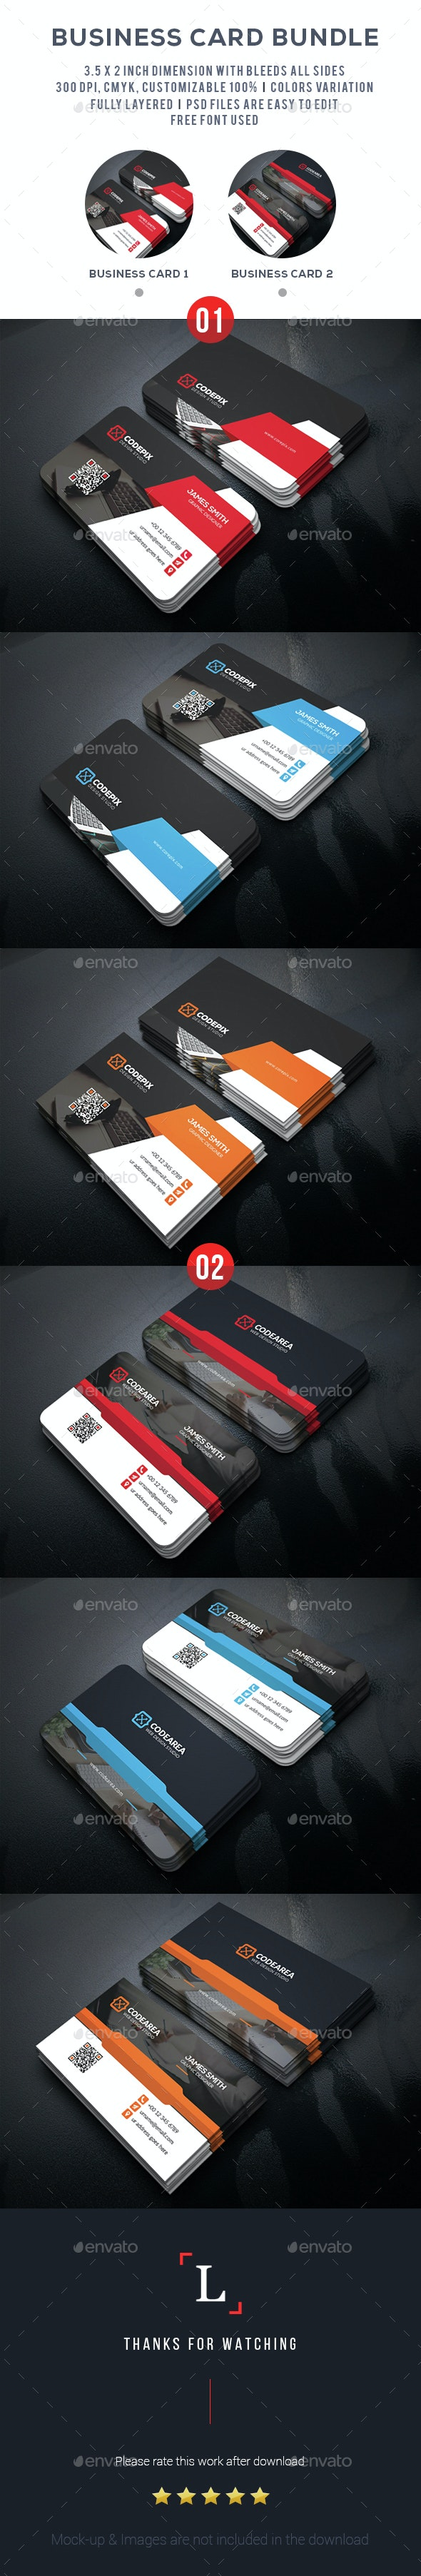 Corporate Business Card Bundle - Business Cards Print Templates